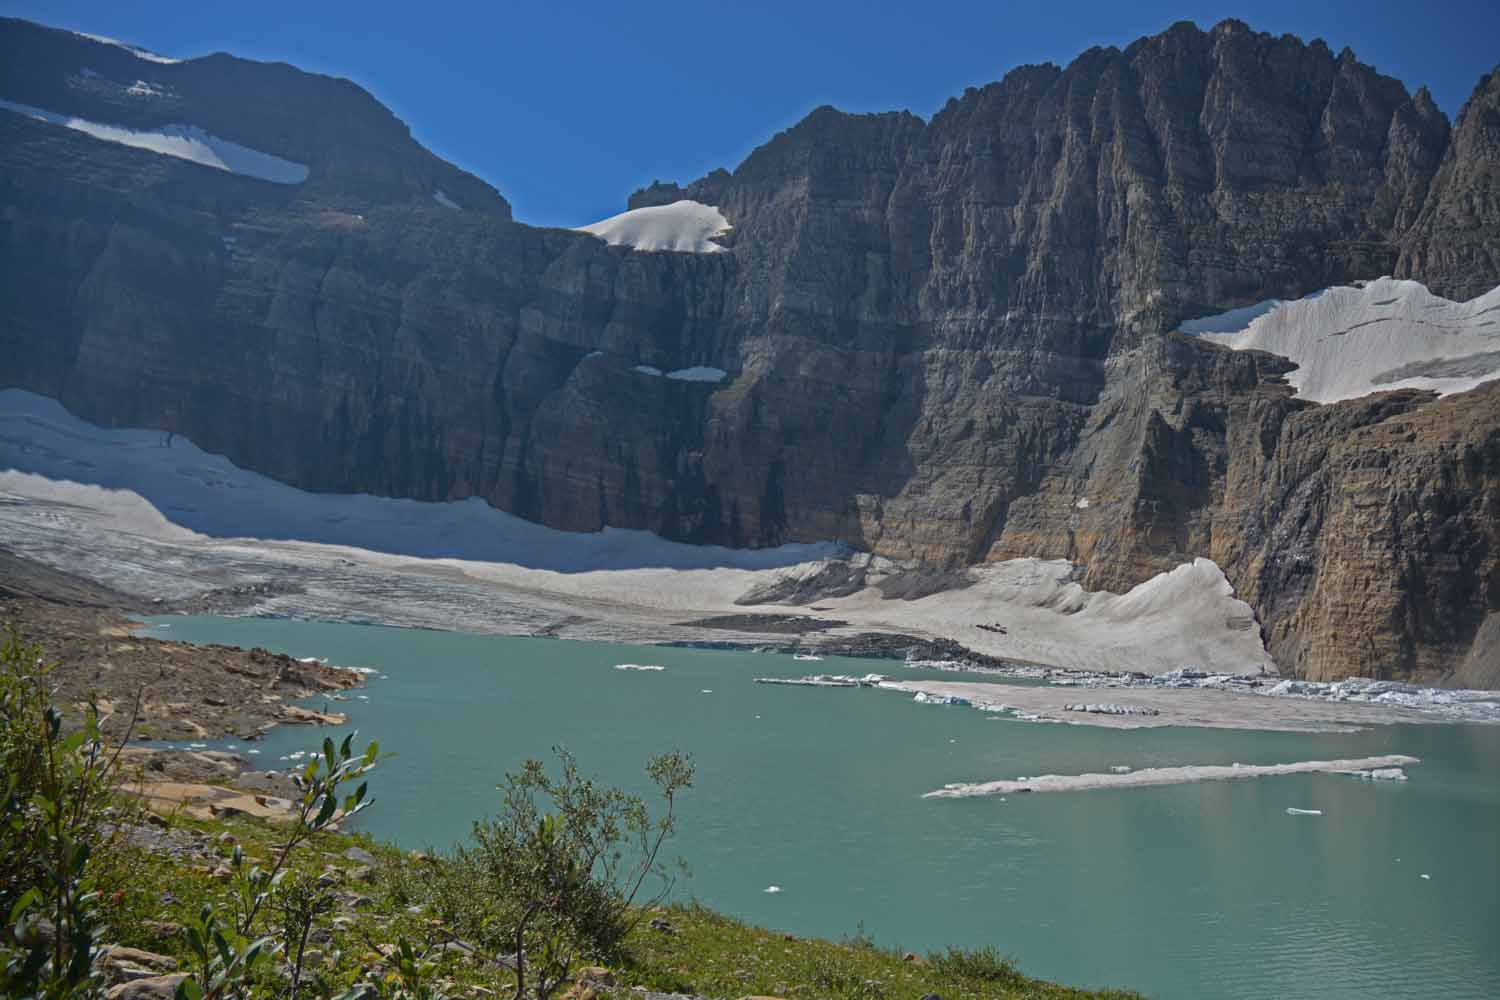 The Grinnell Glacier comes into view upfront and personal